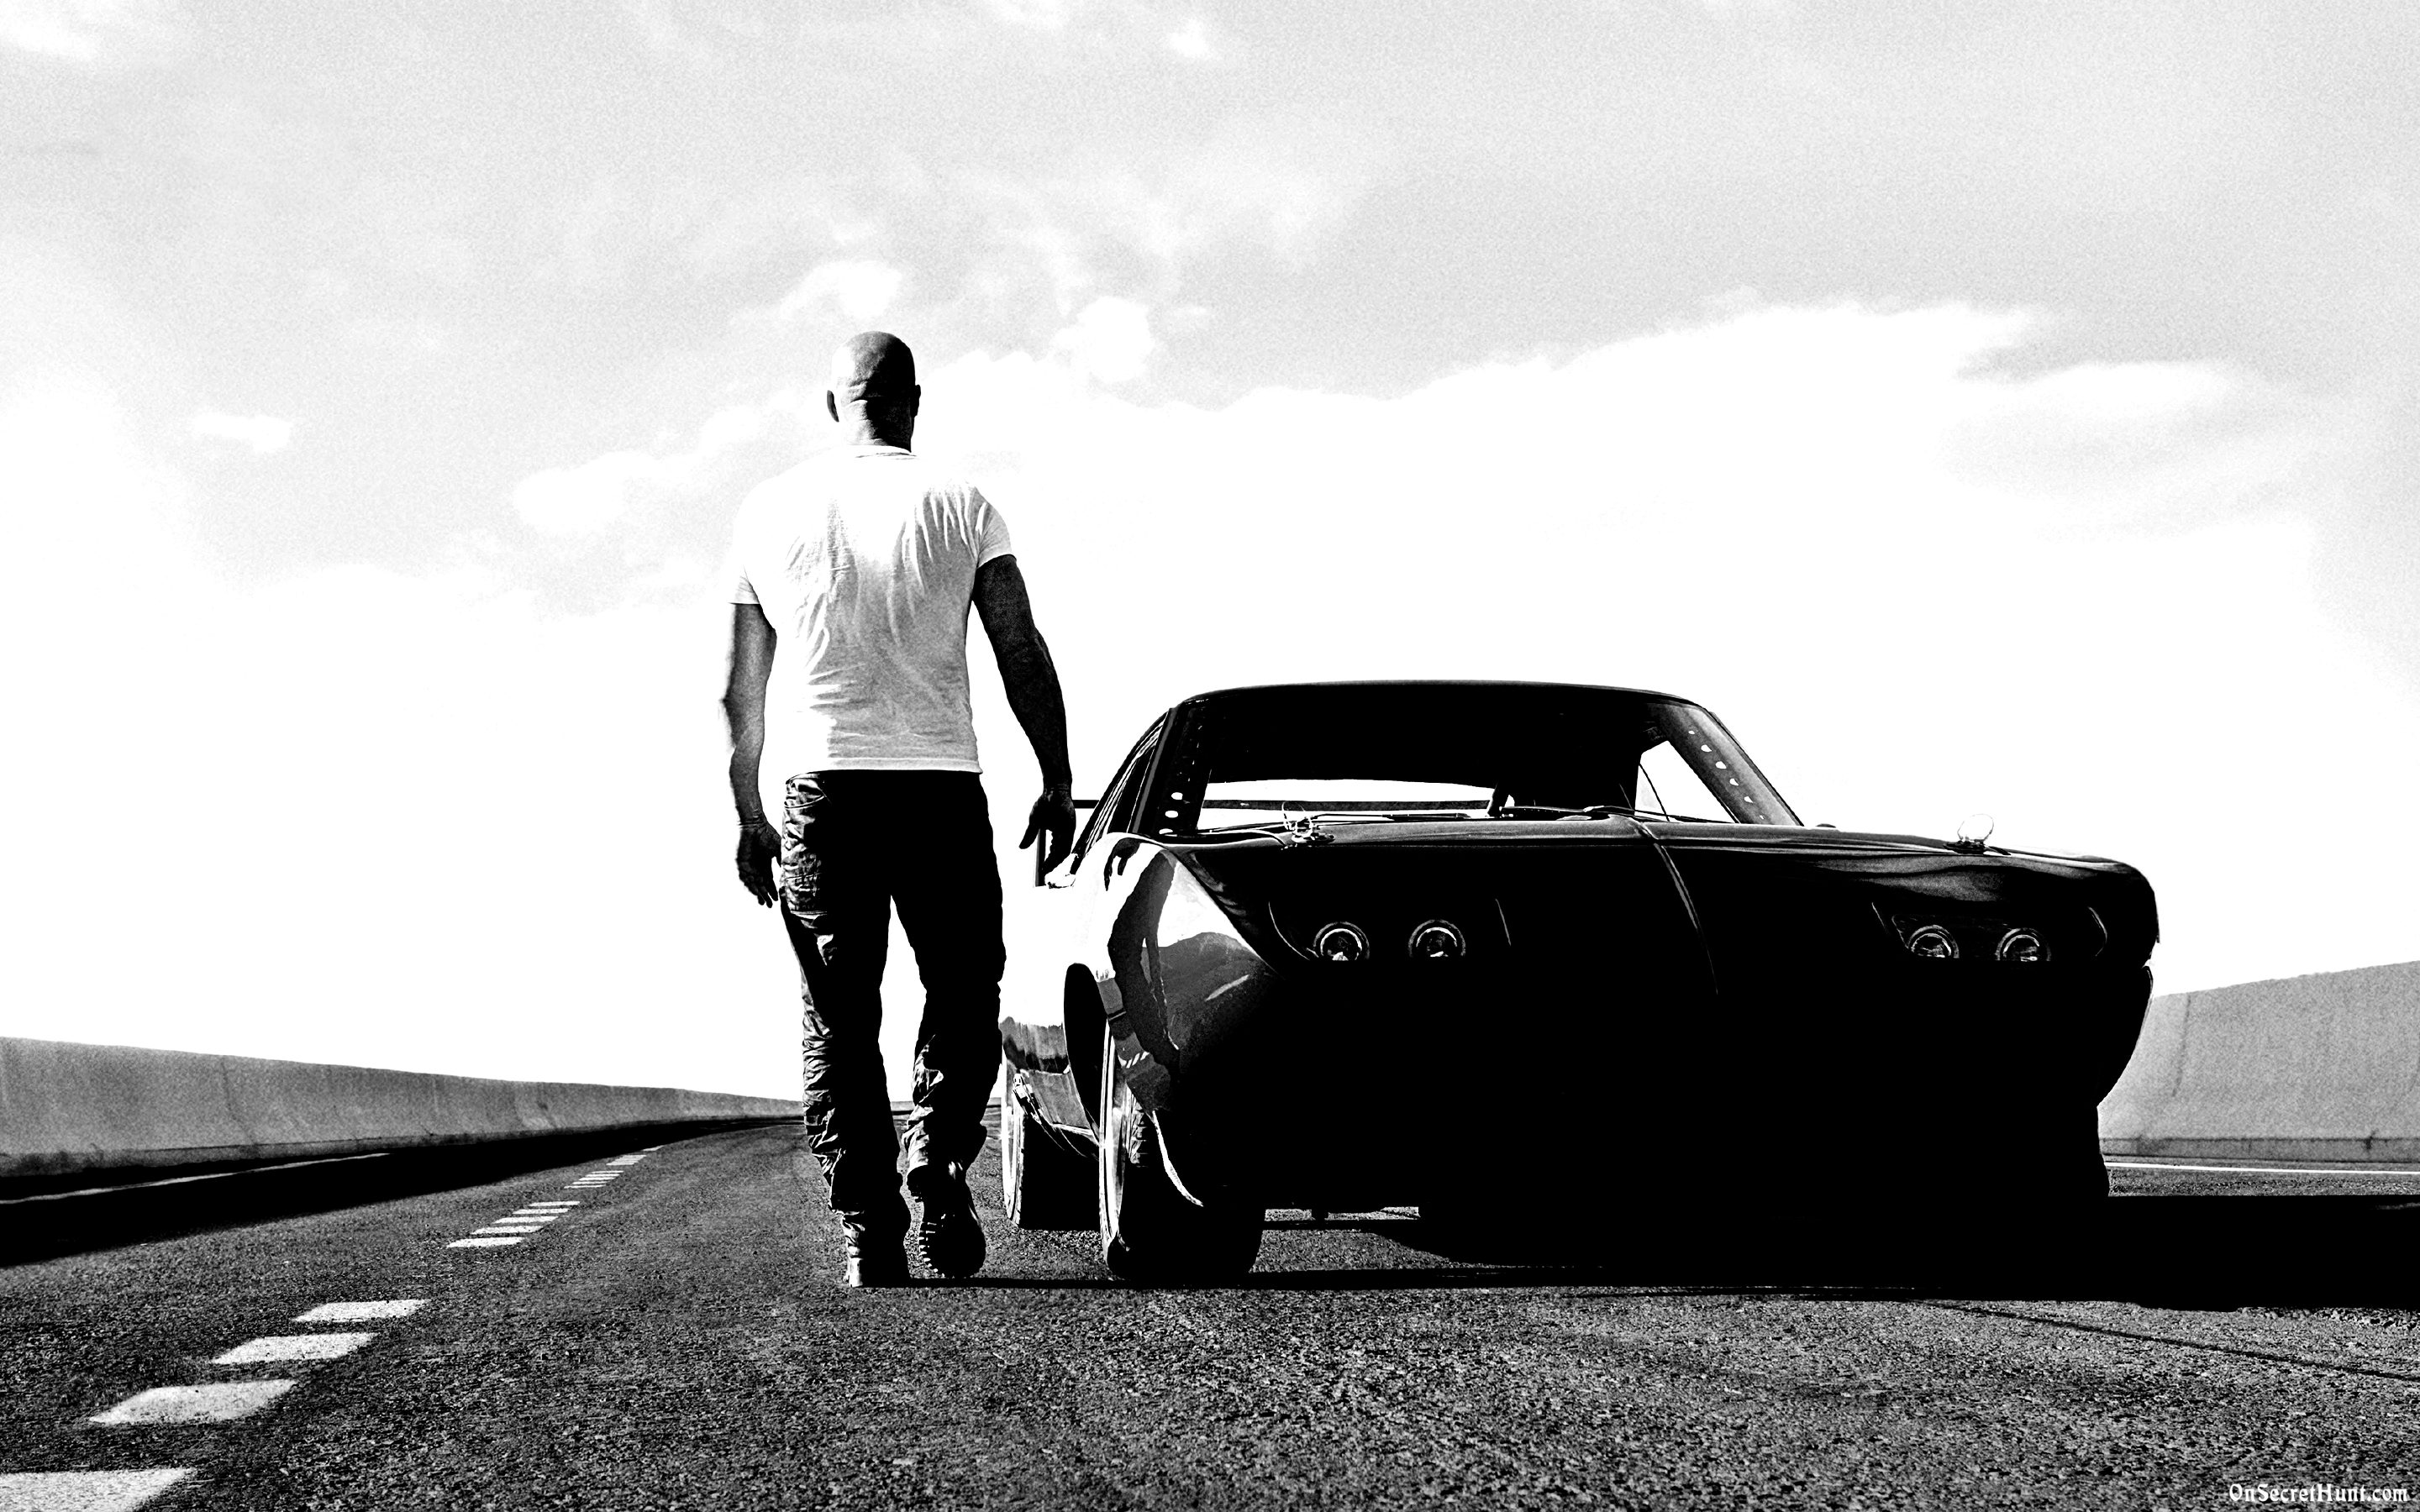 Wallpaper Wednesday Gets Fast And Furious Action A Go Go Llc